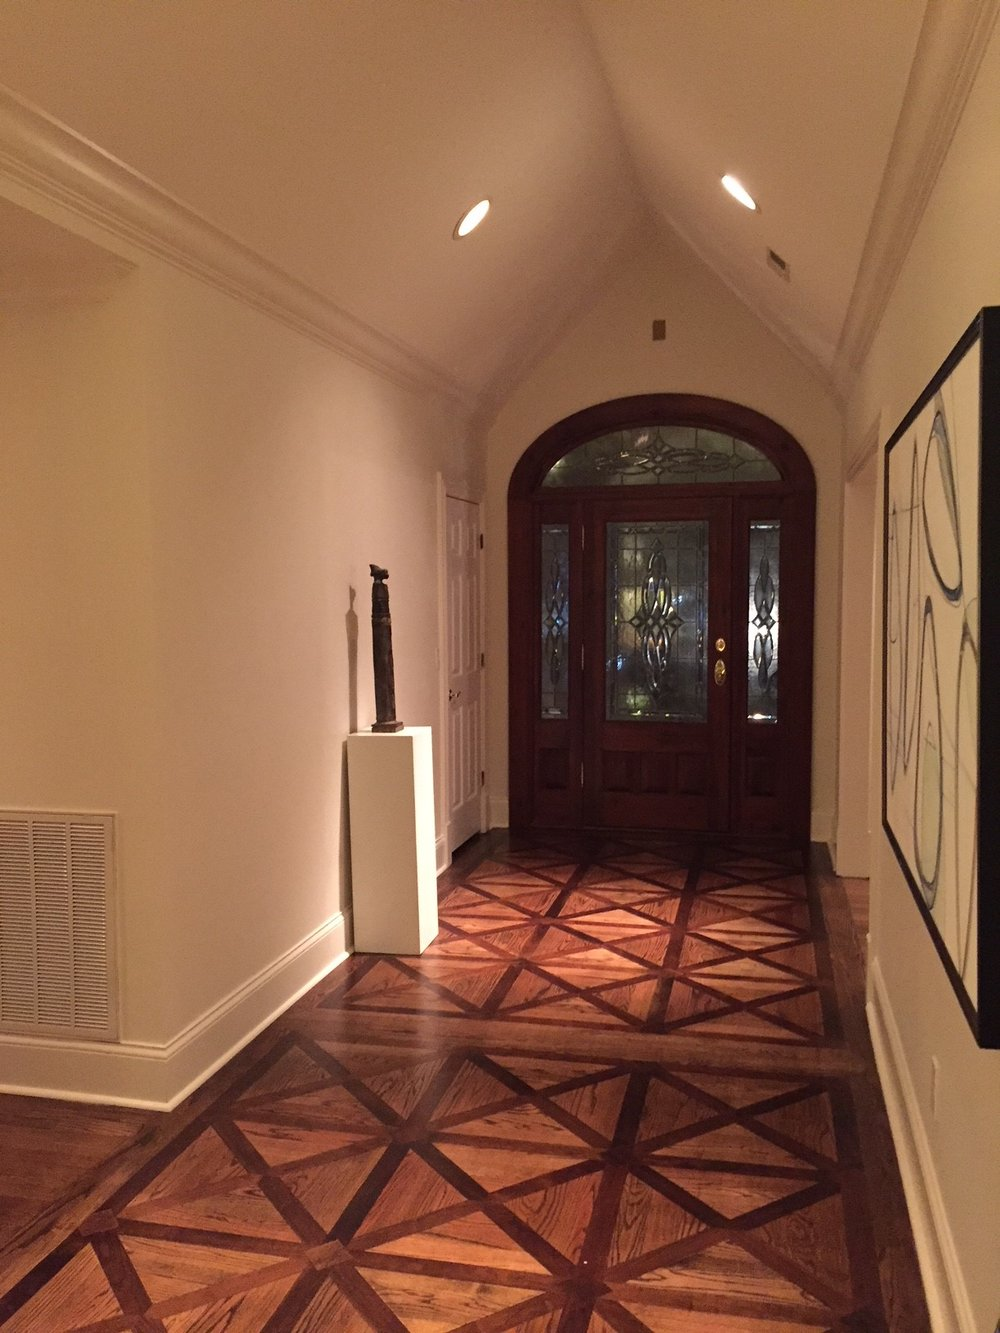 Can we talk about her foyer? Swoon.